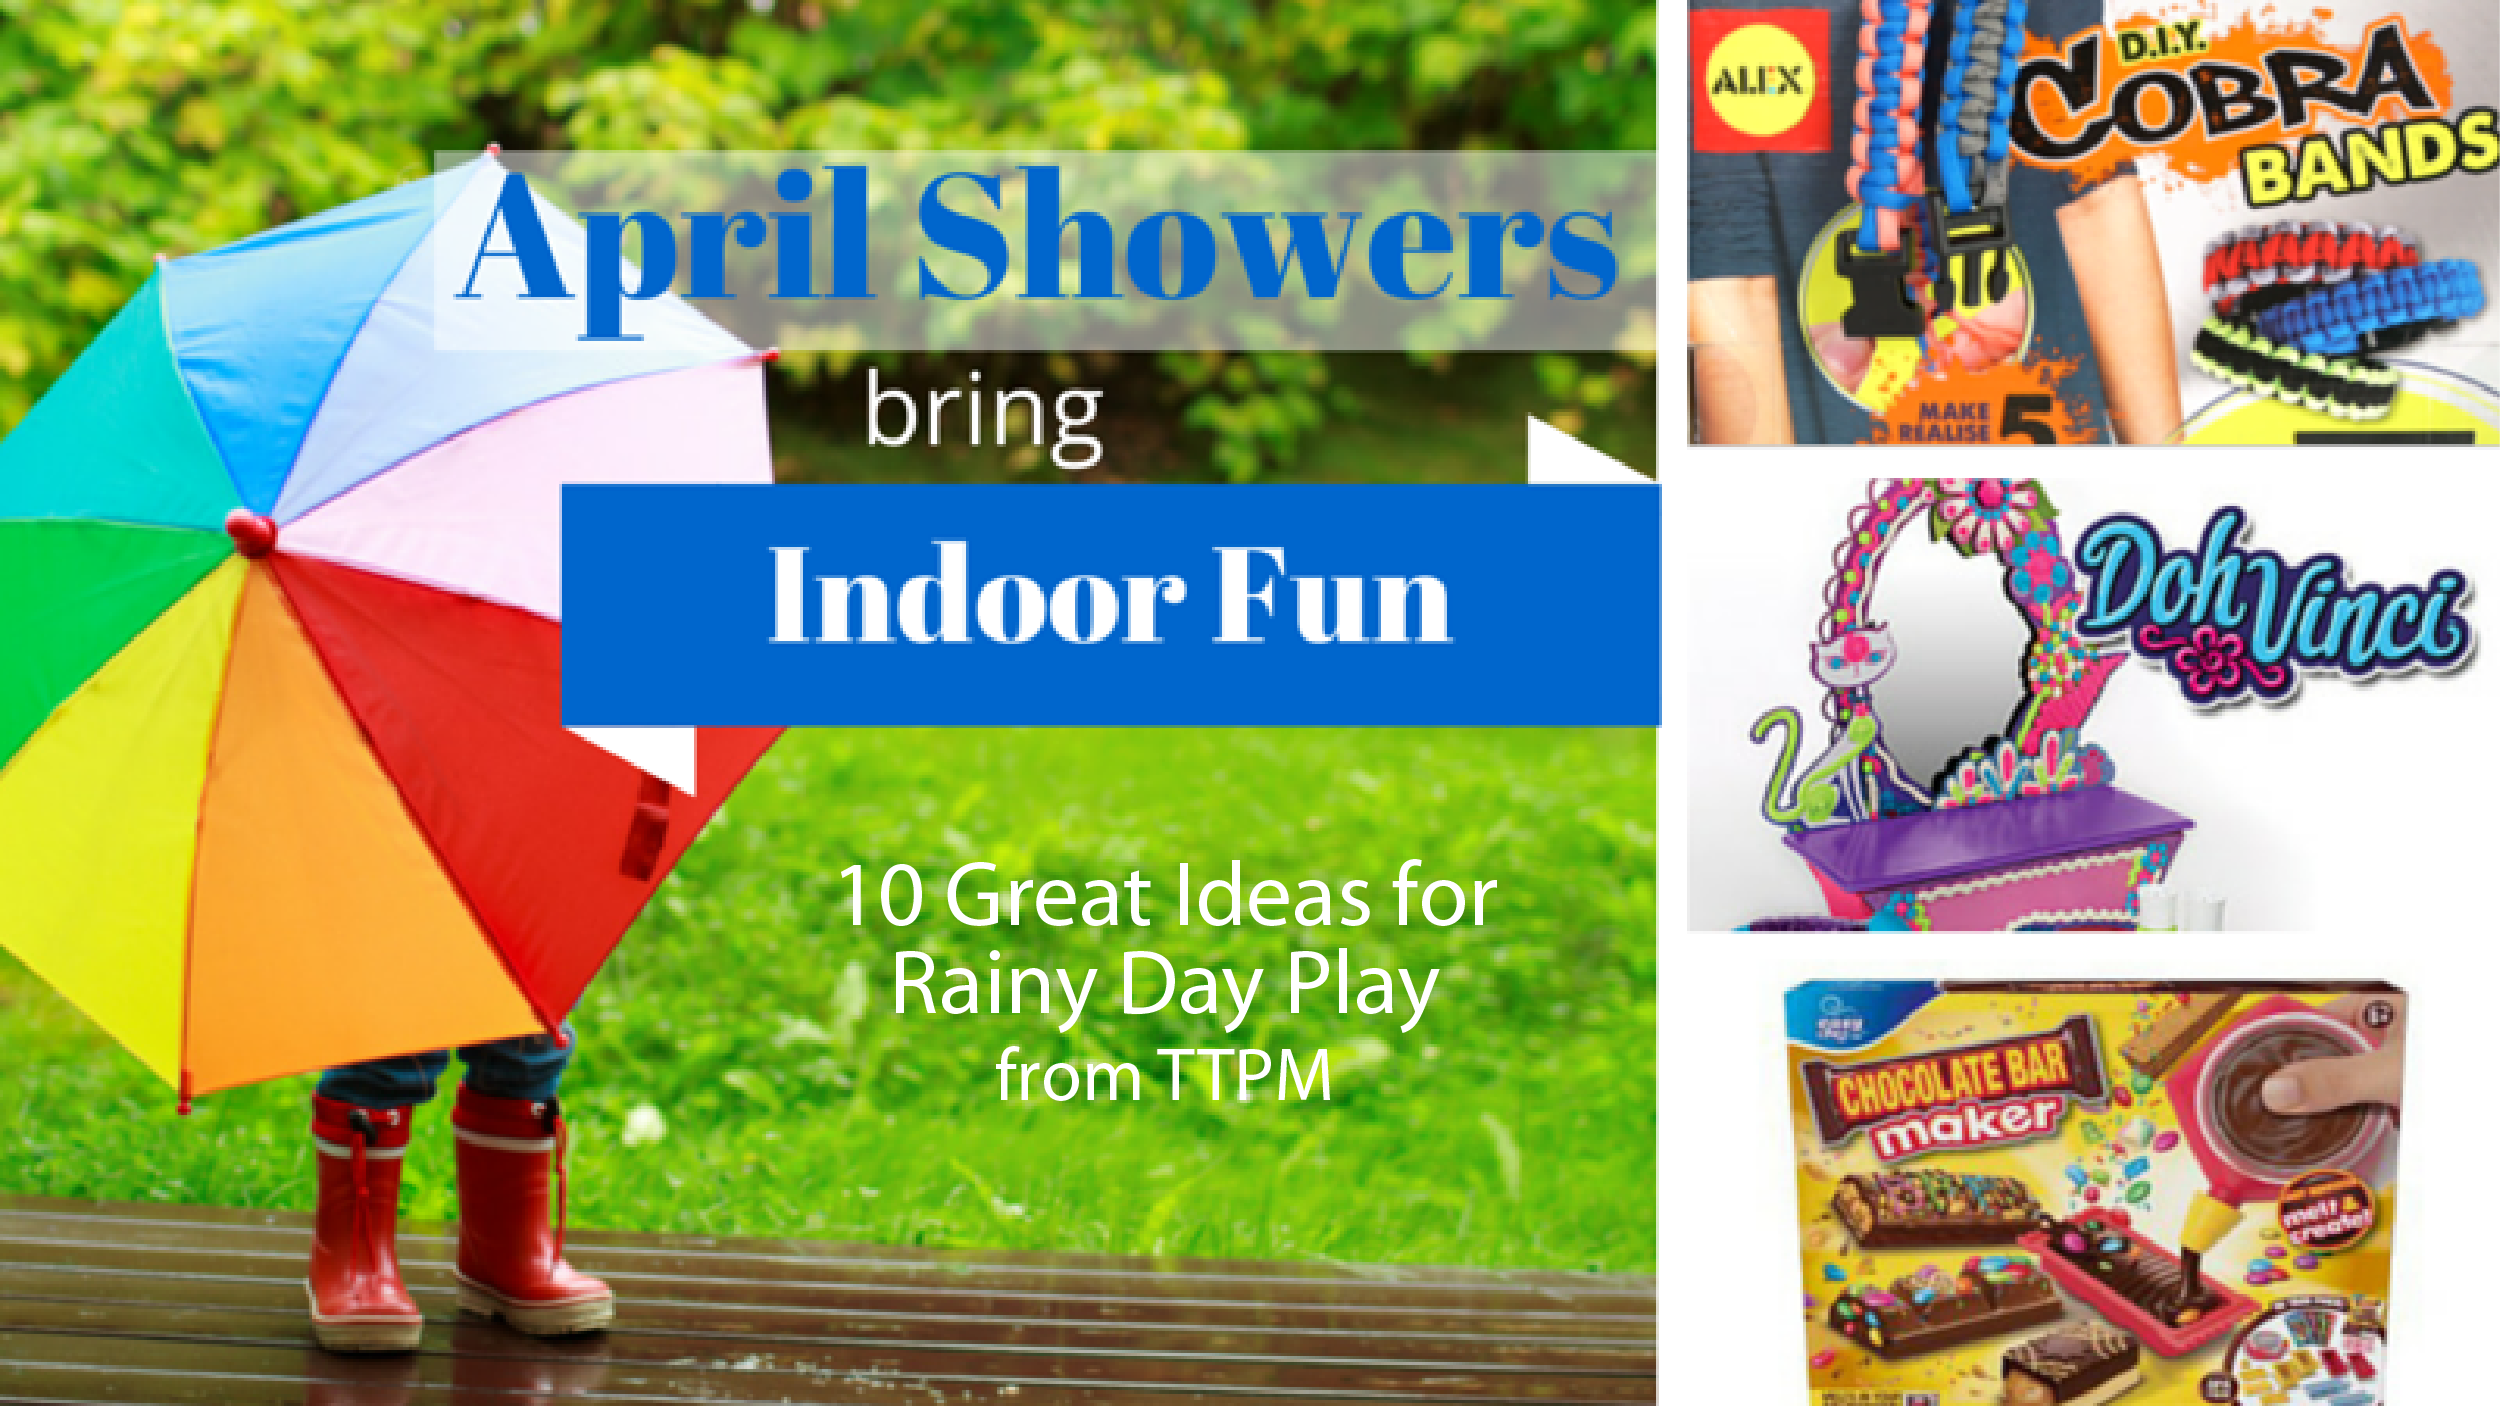 april showersblog-01